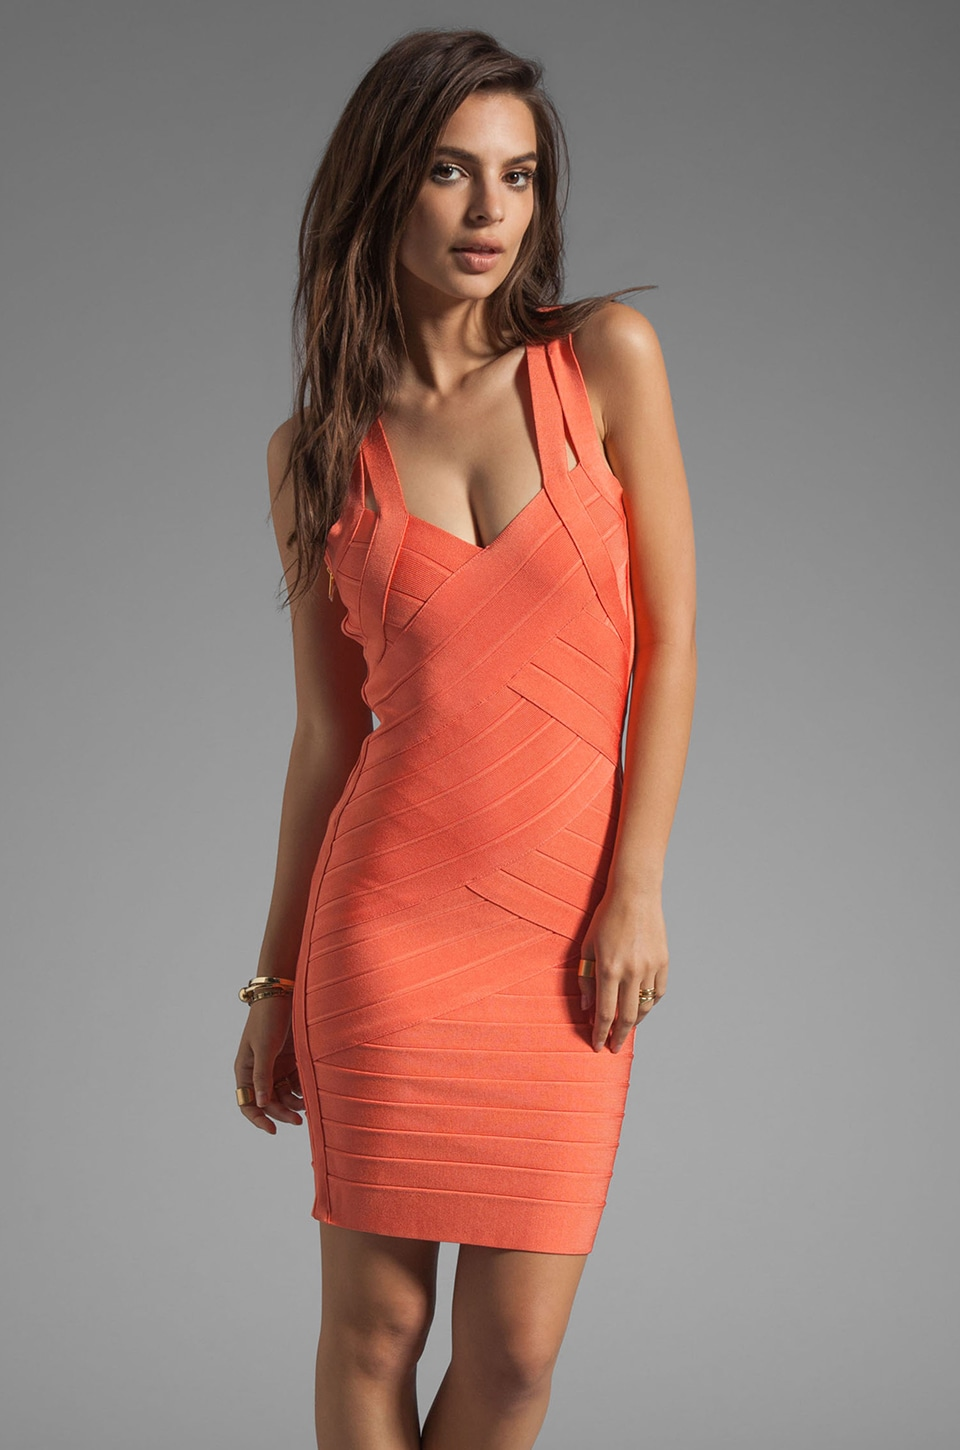 Stretta Christiana Dress in Fusion Coral